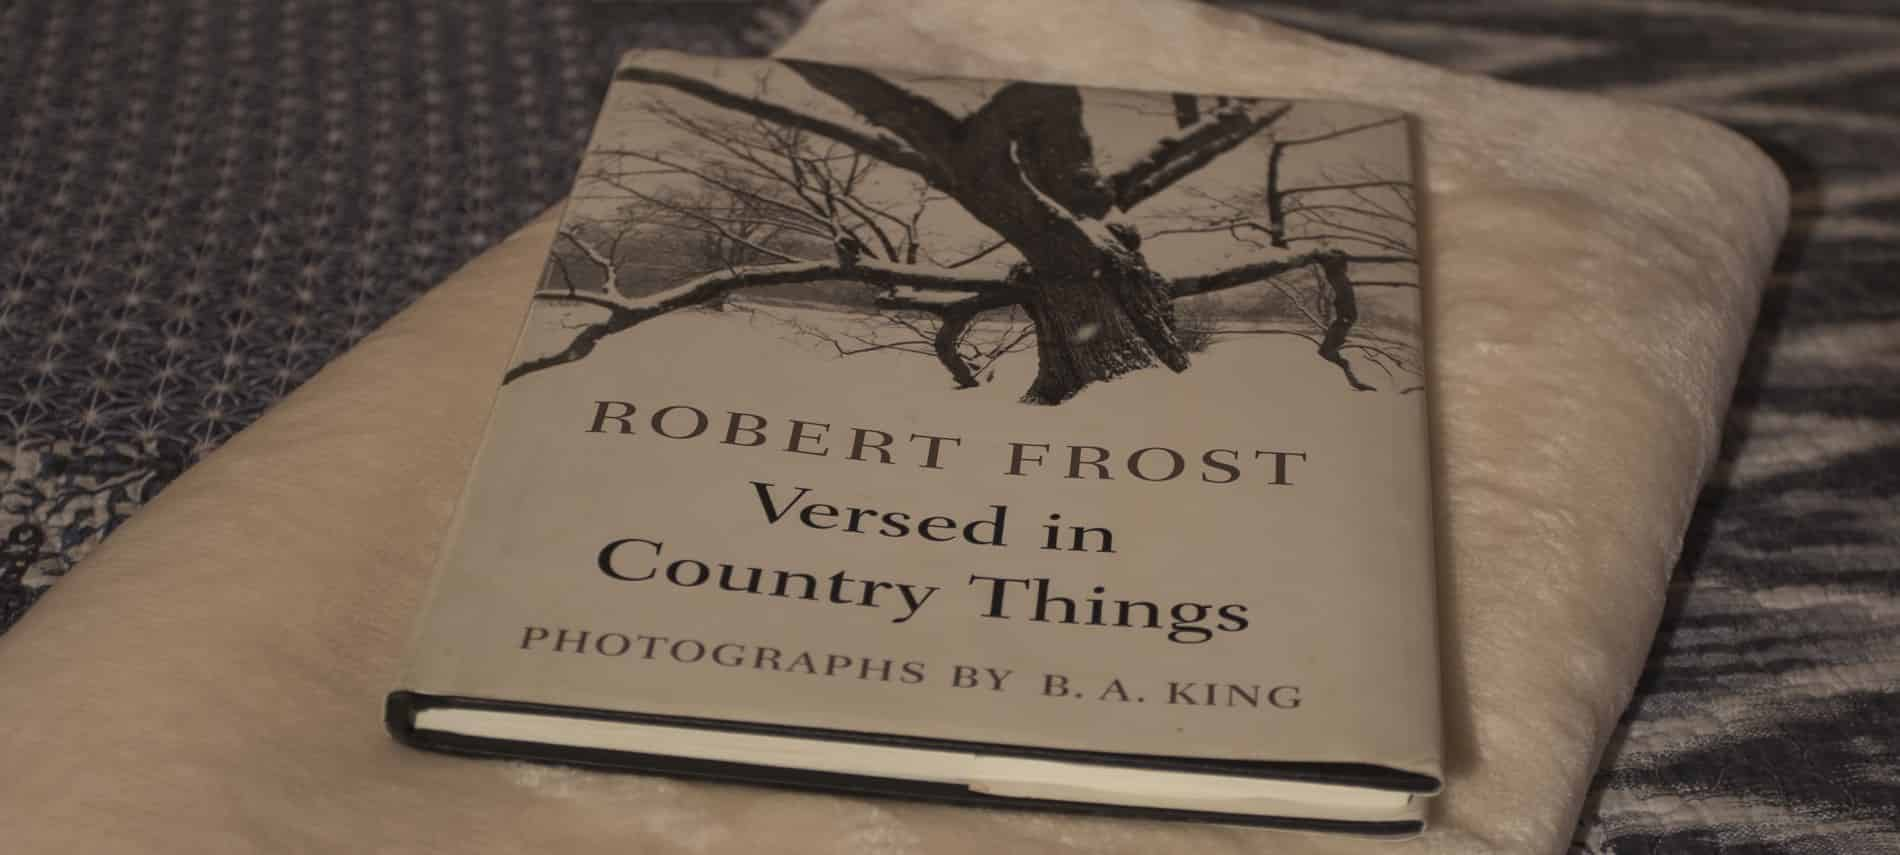 "Close up view of a Robert Frost book, ""Versed in Country Things"""